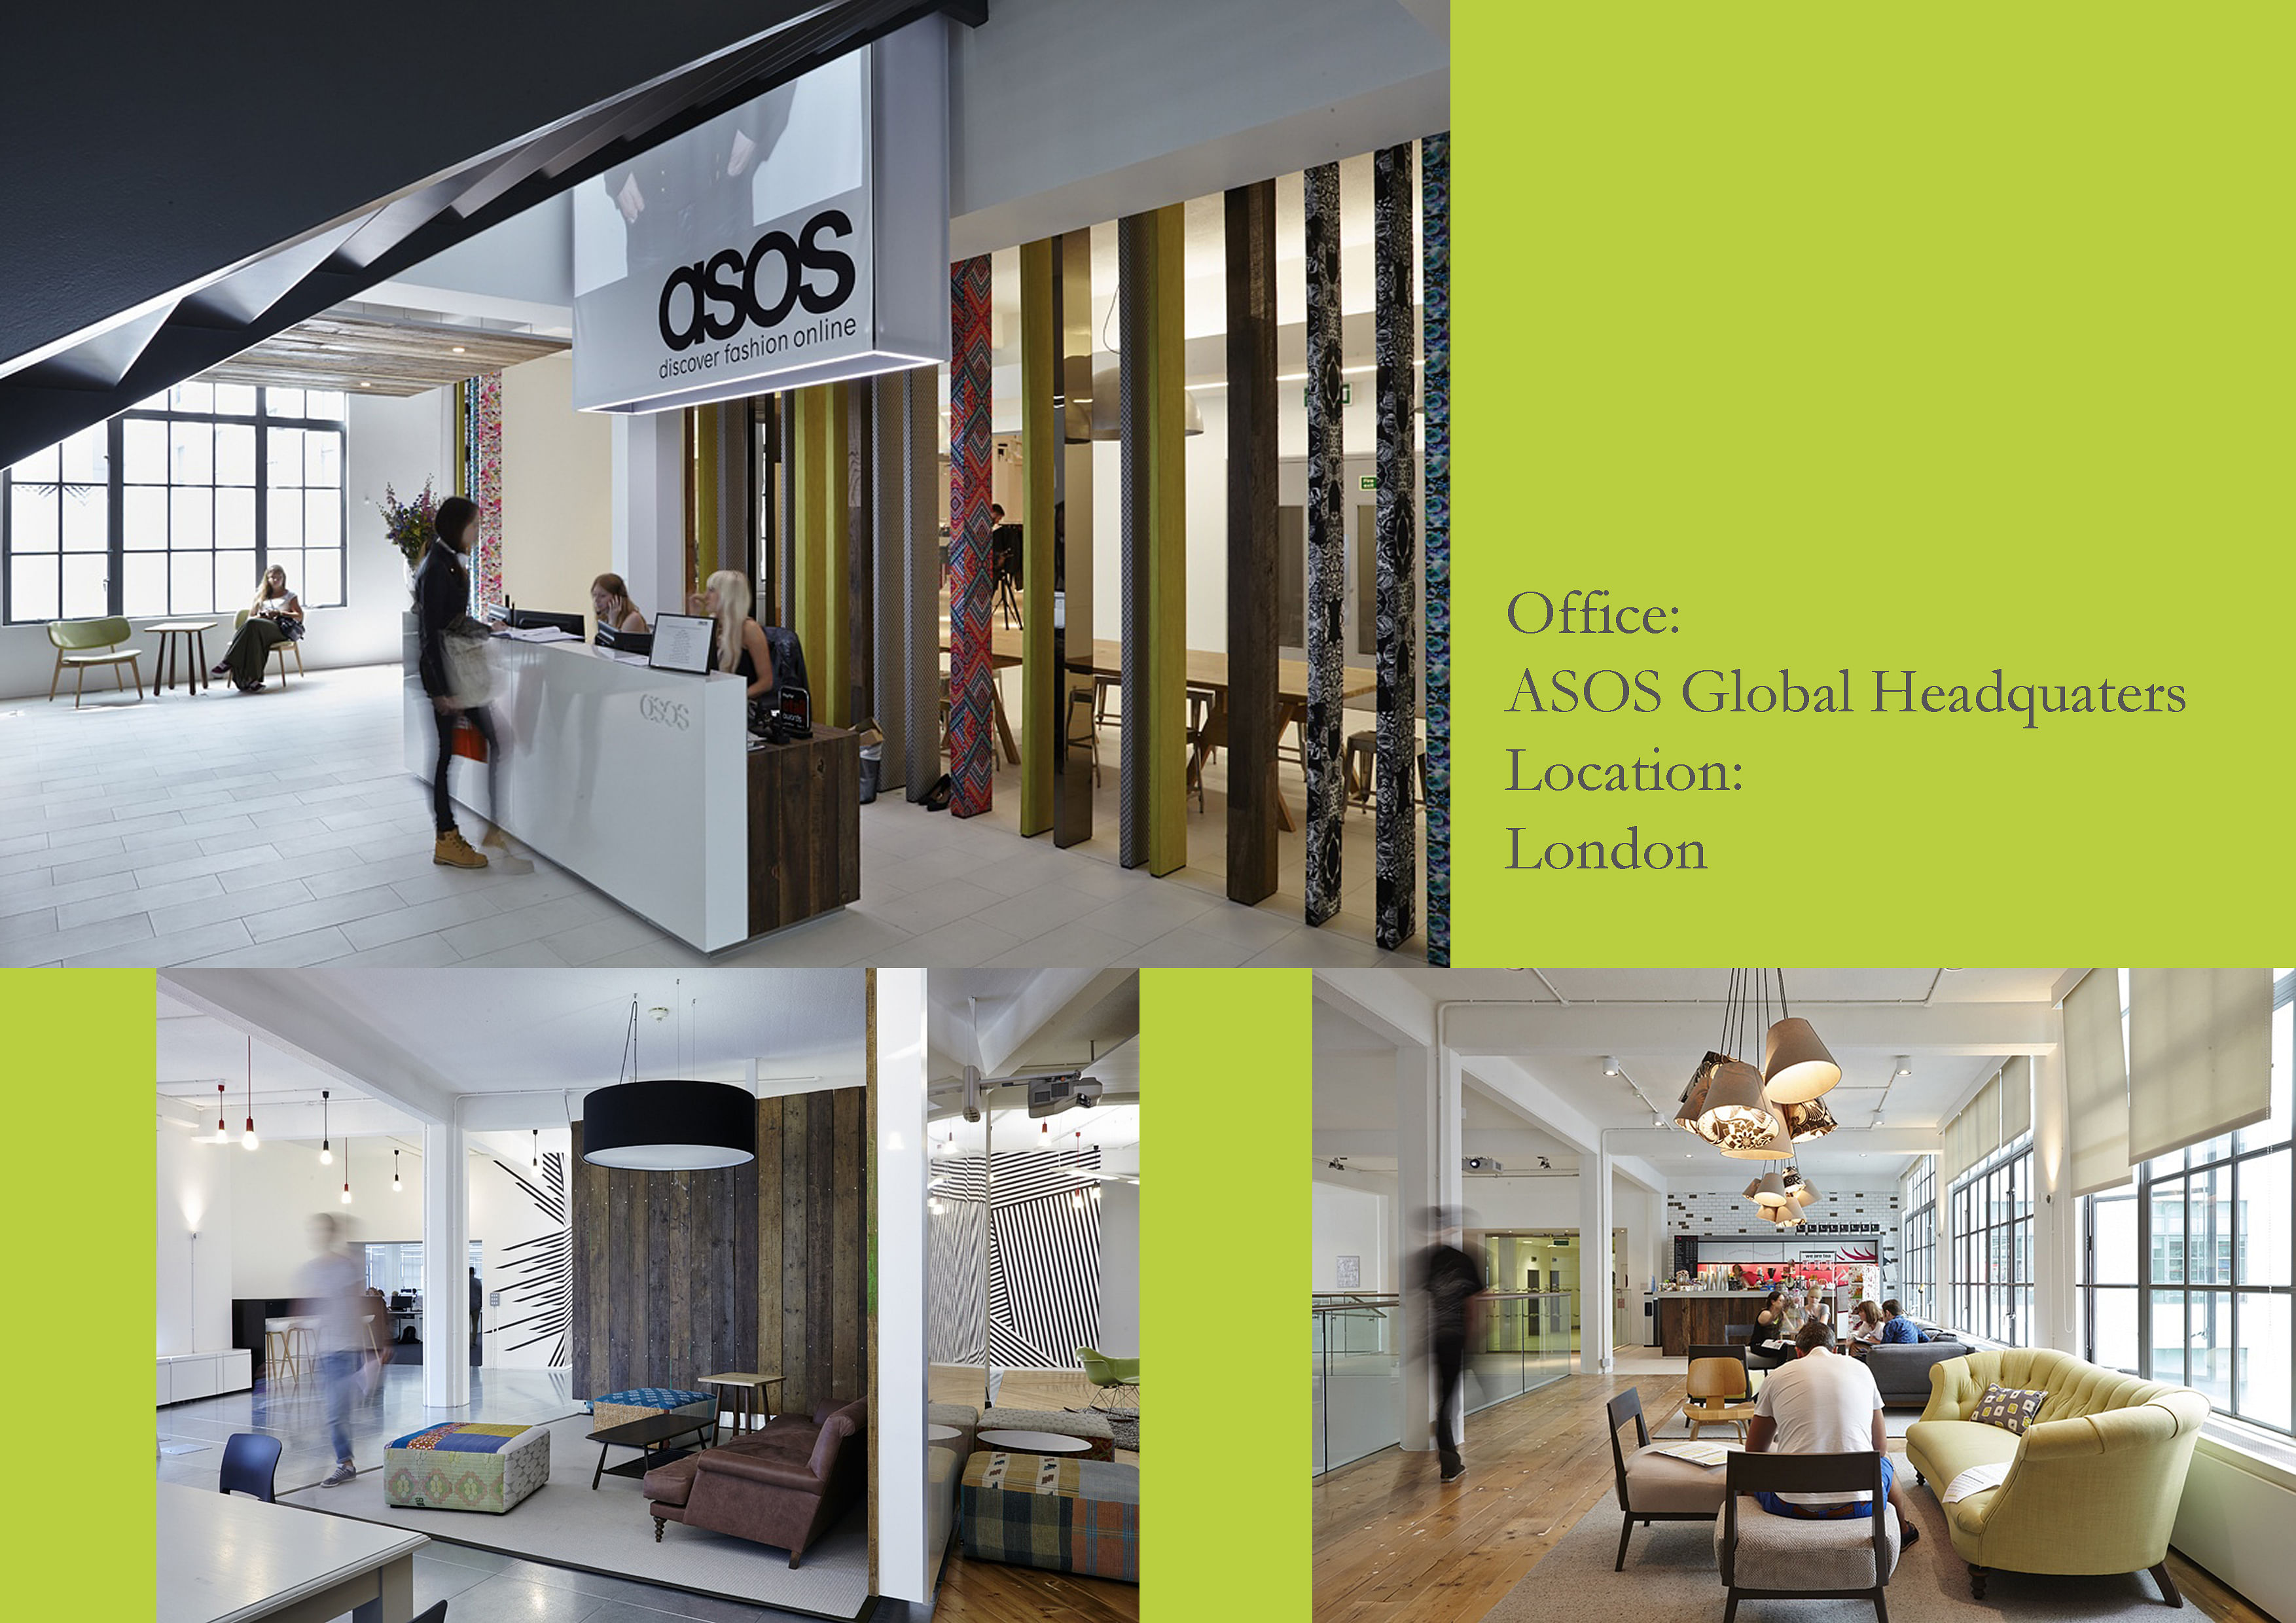 Online Office Designer Design Inspiration ASOS Headquarters Online